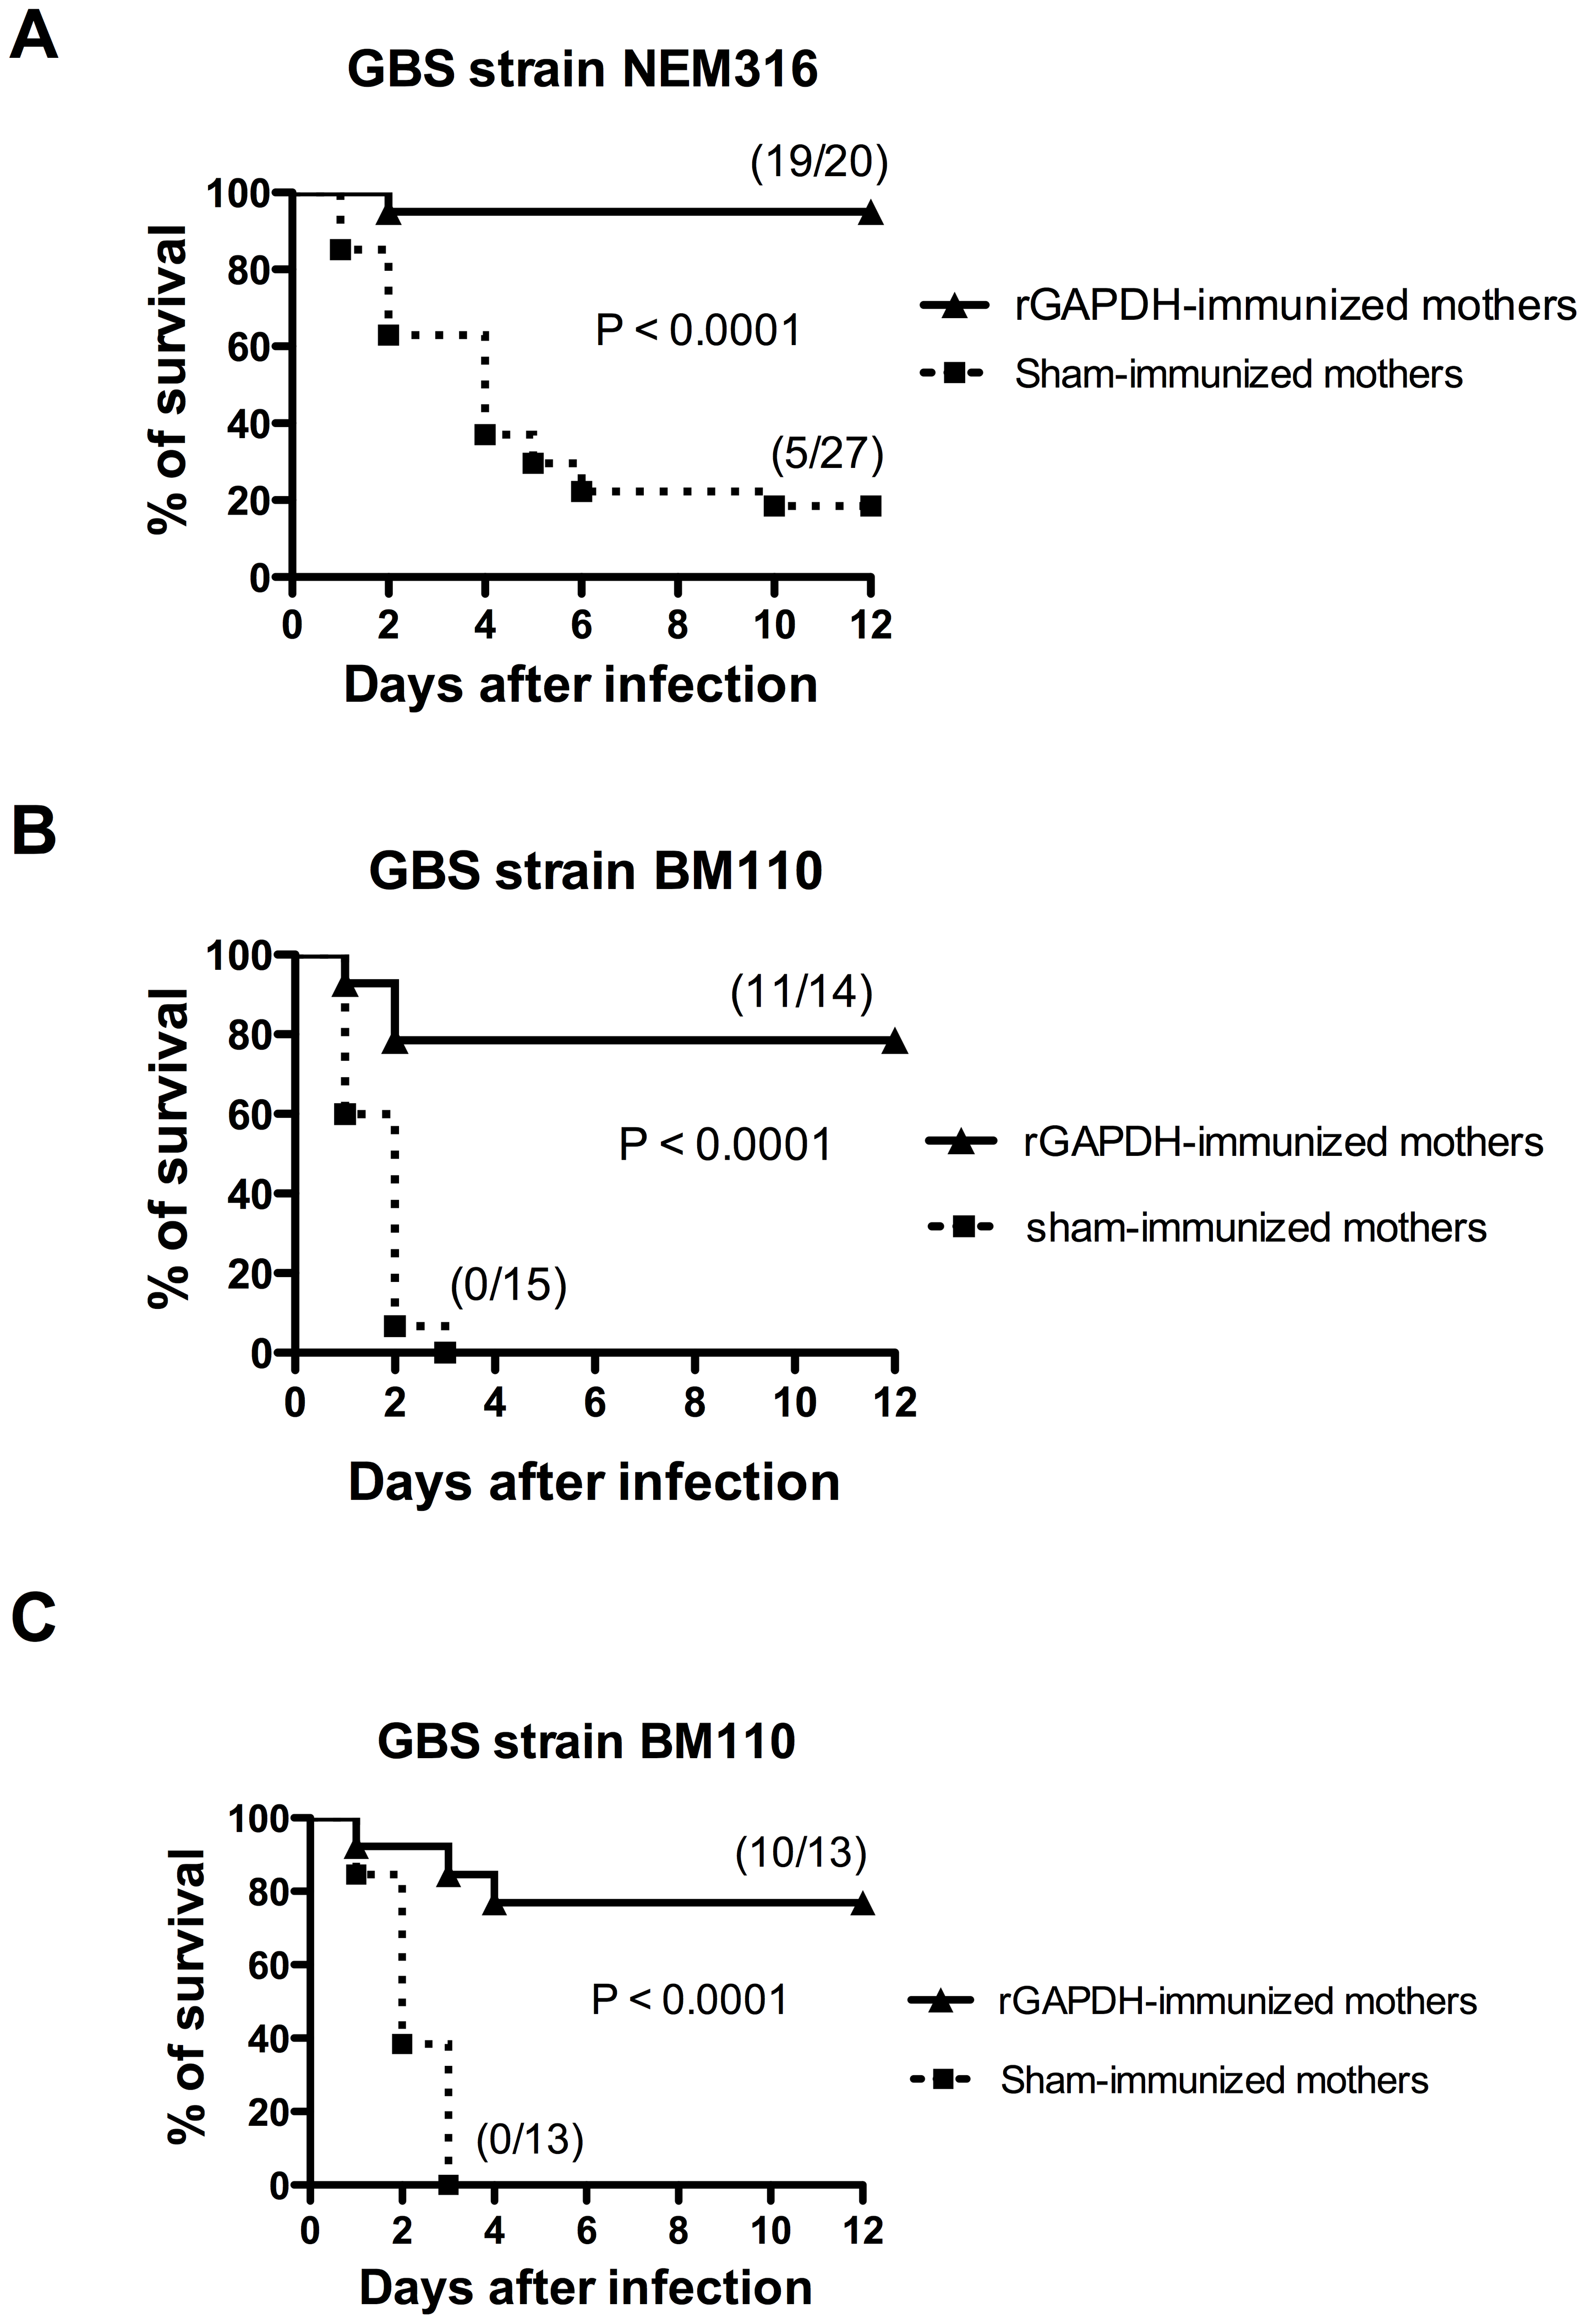 Maternal immunization with rGAPDH protects newborn mice from GBS-induced death.